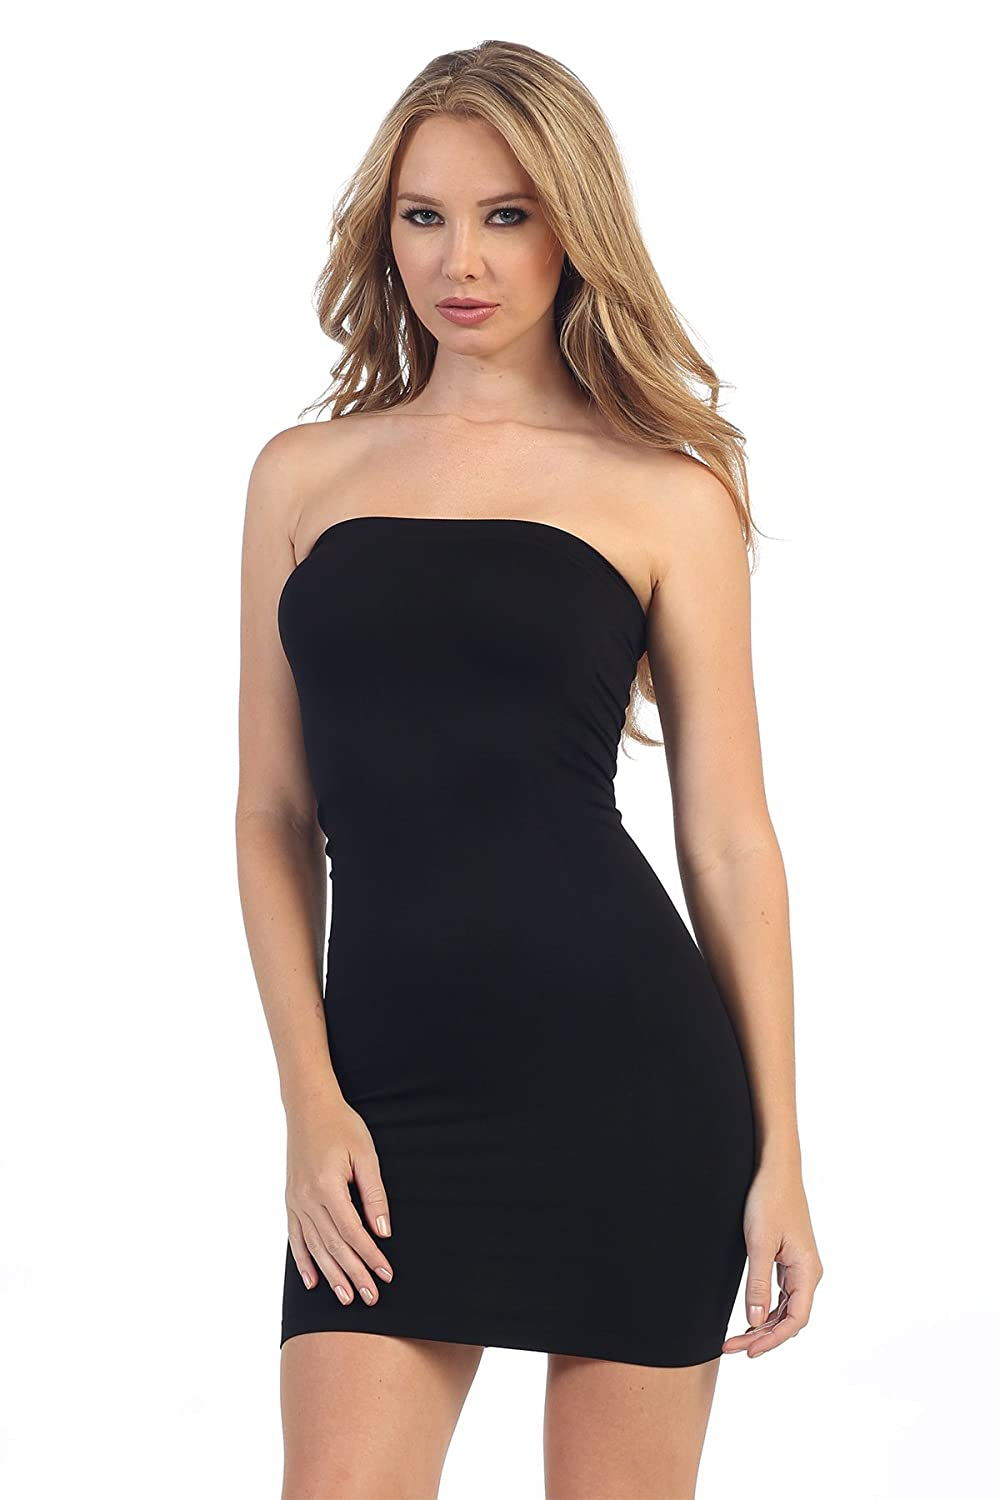 be2ecca36cfd Attractive slip dress that suits any events or occasions! The basic designs  are simple yet trendy and fashionable. Designed to be form fitting, ...